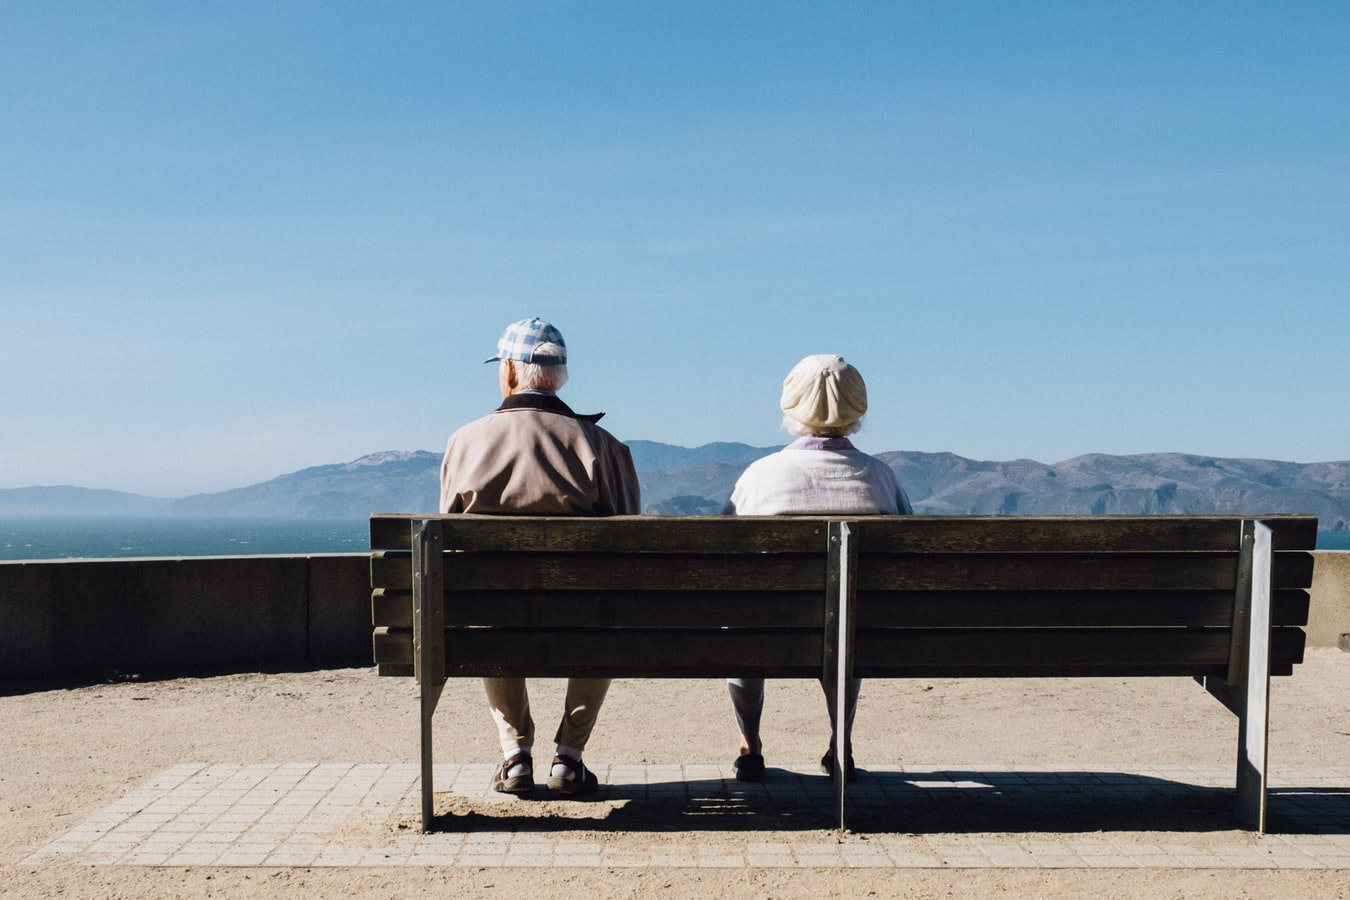 An older couple sitting on a bench and over looking the mountains. The wife is enjoying time with her husband who has Alzheimer's